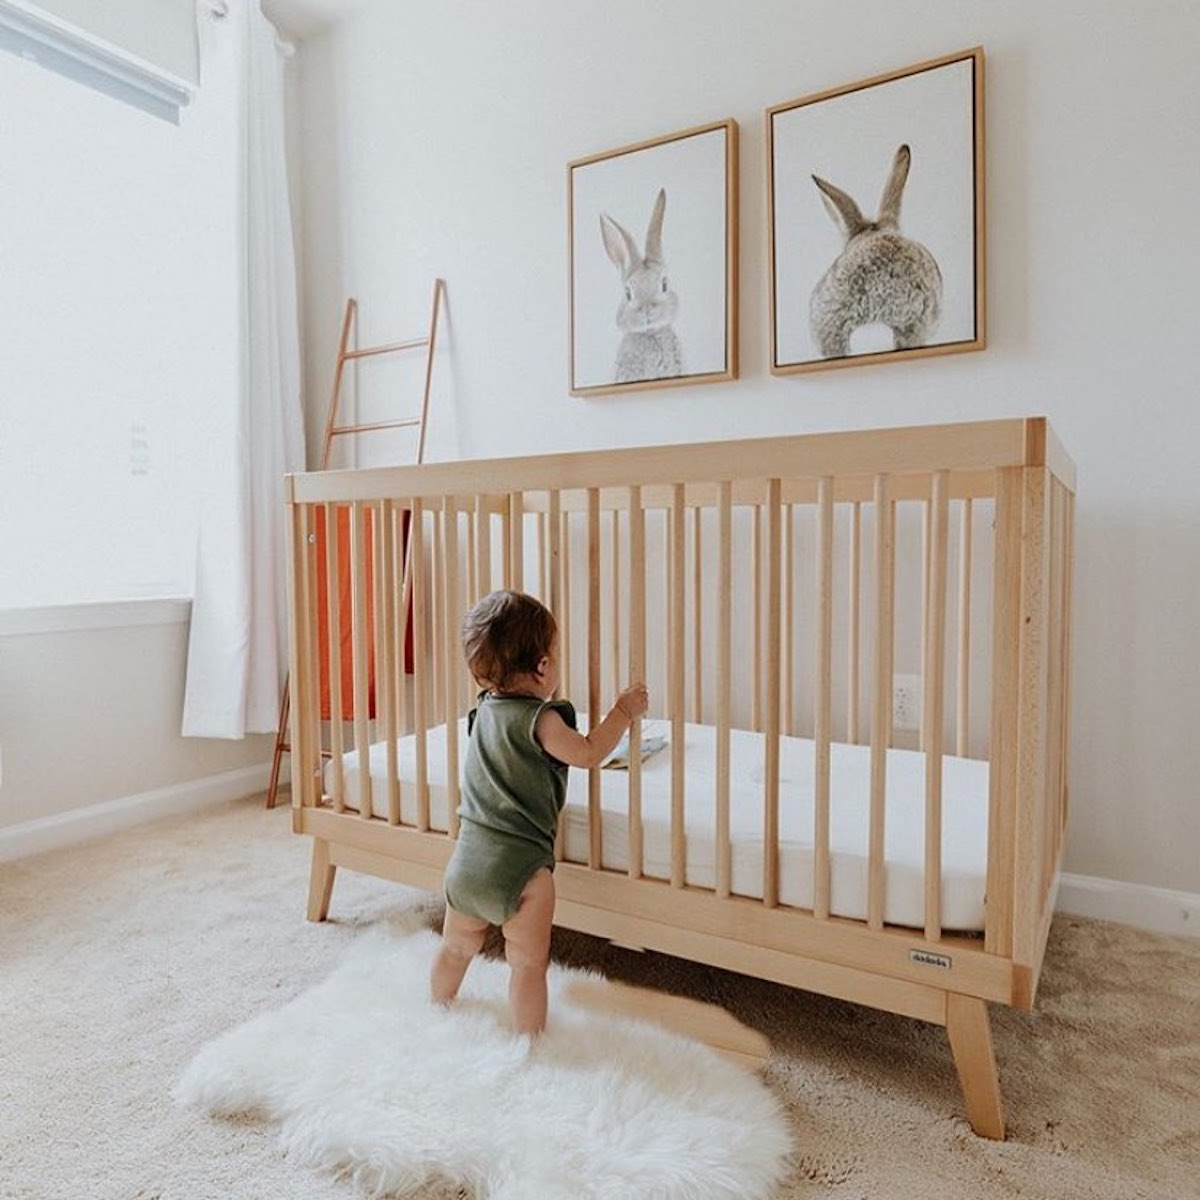 Toddler standing on a rug in their nursery holding on to a beech wood dadada crib